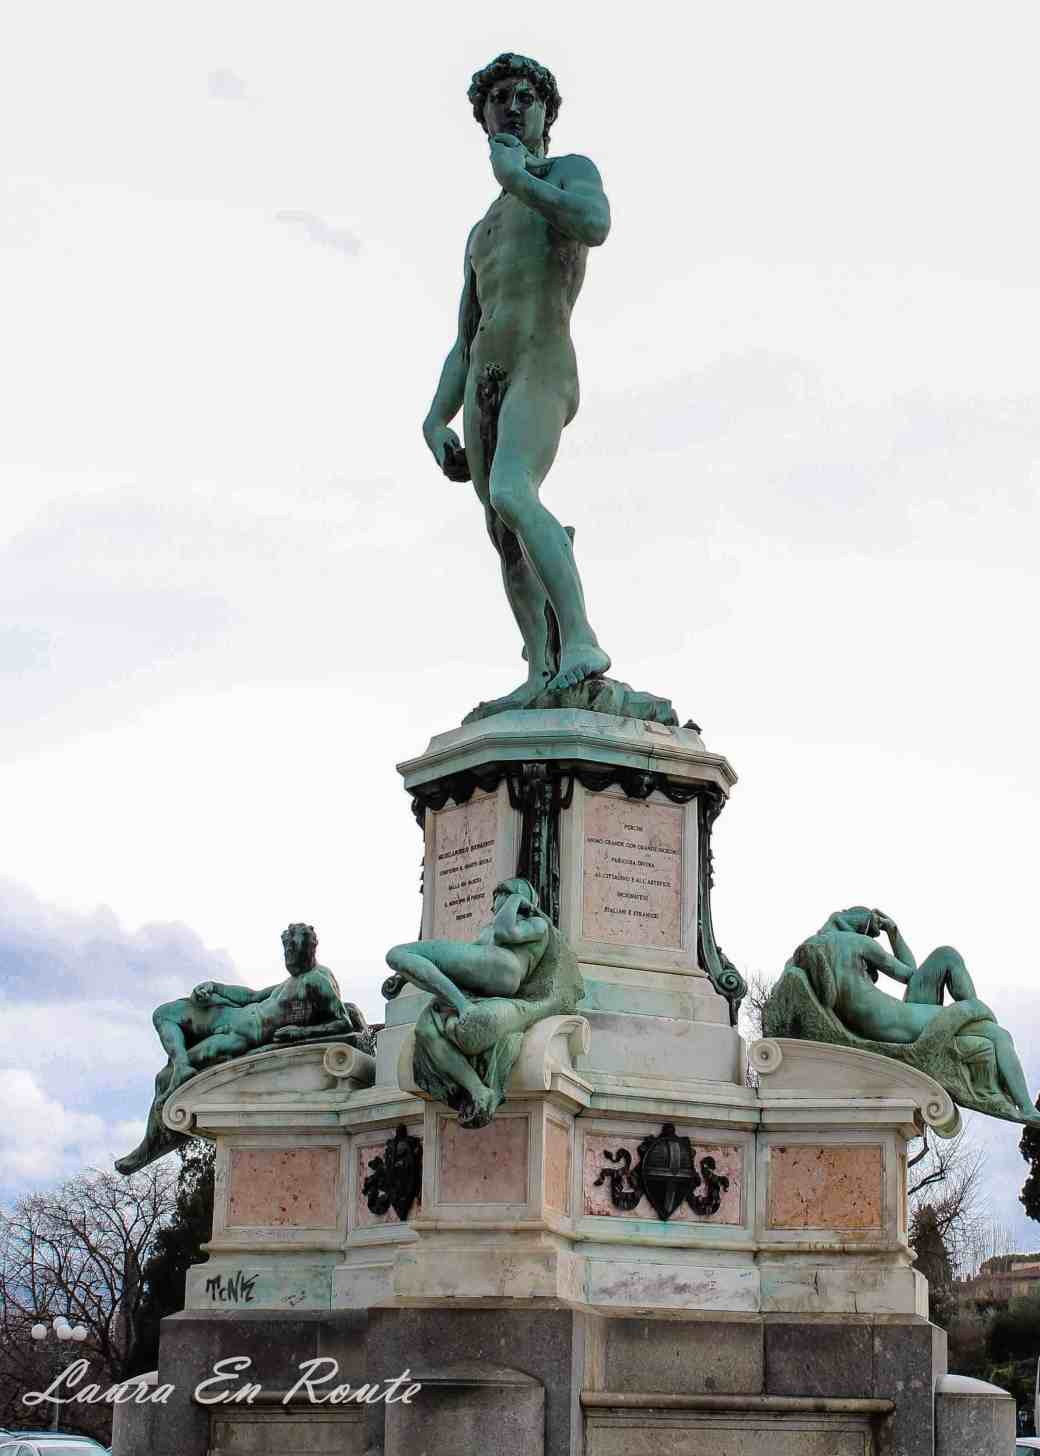 David, Piazzale Michelangelo, Florence